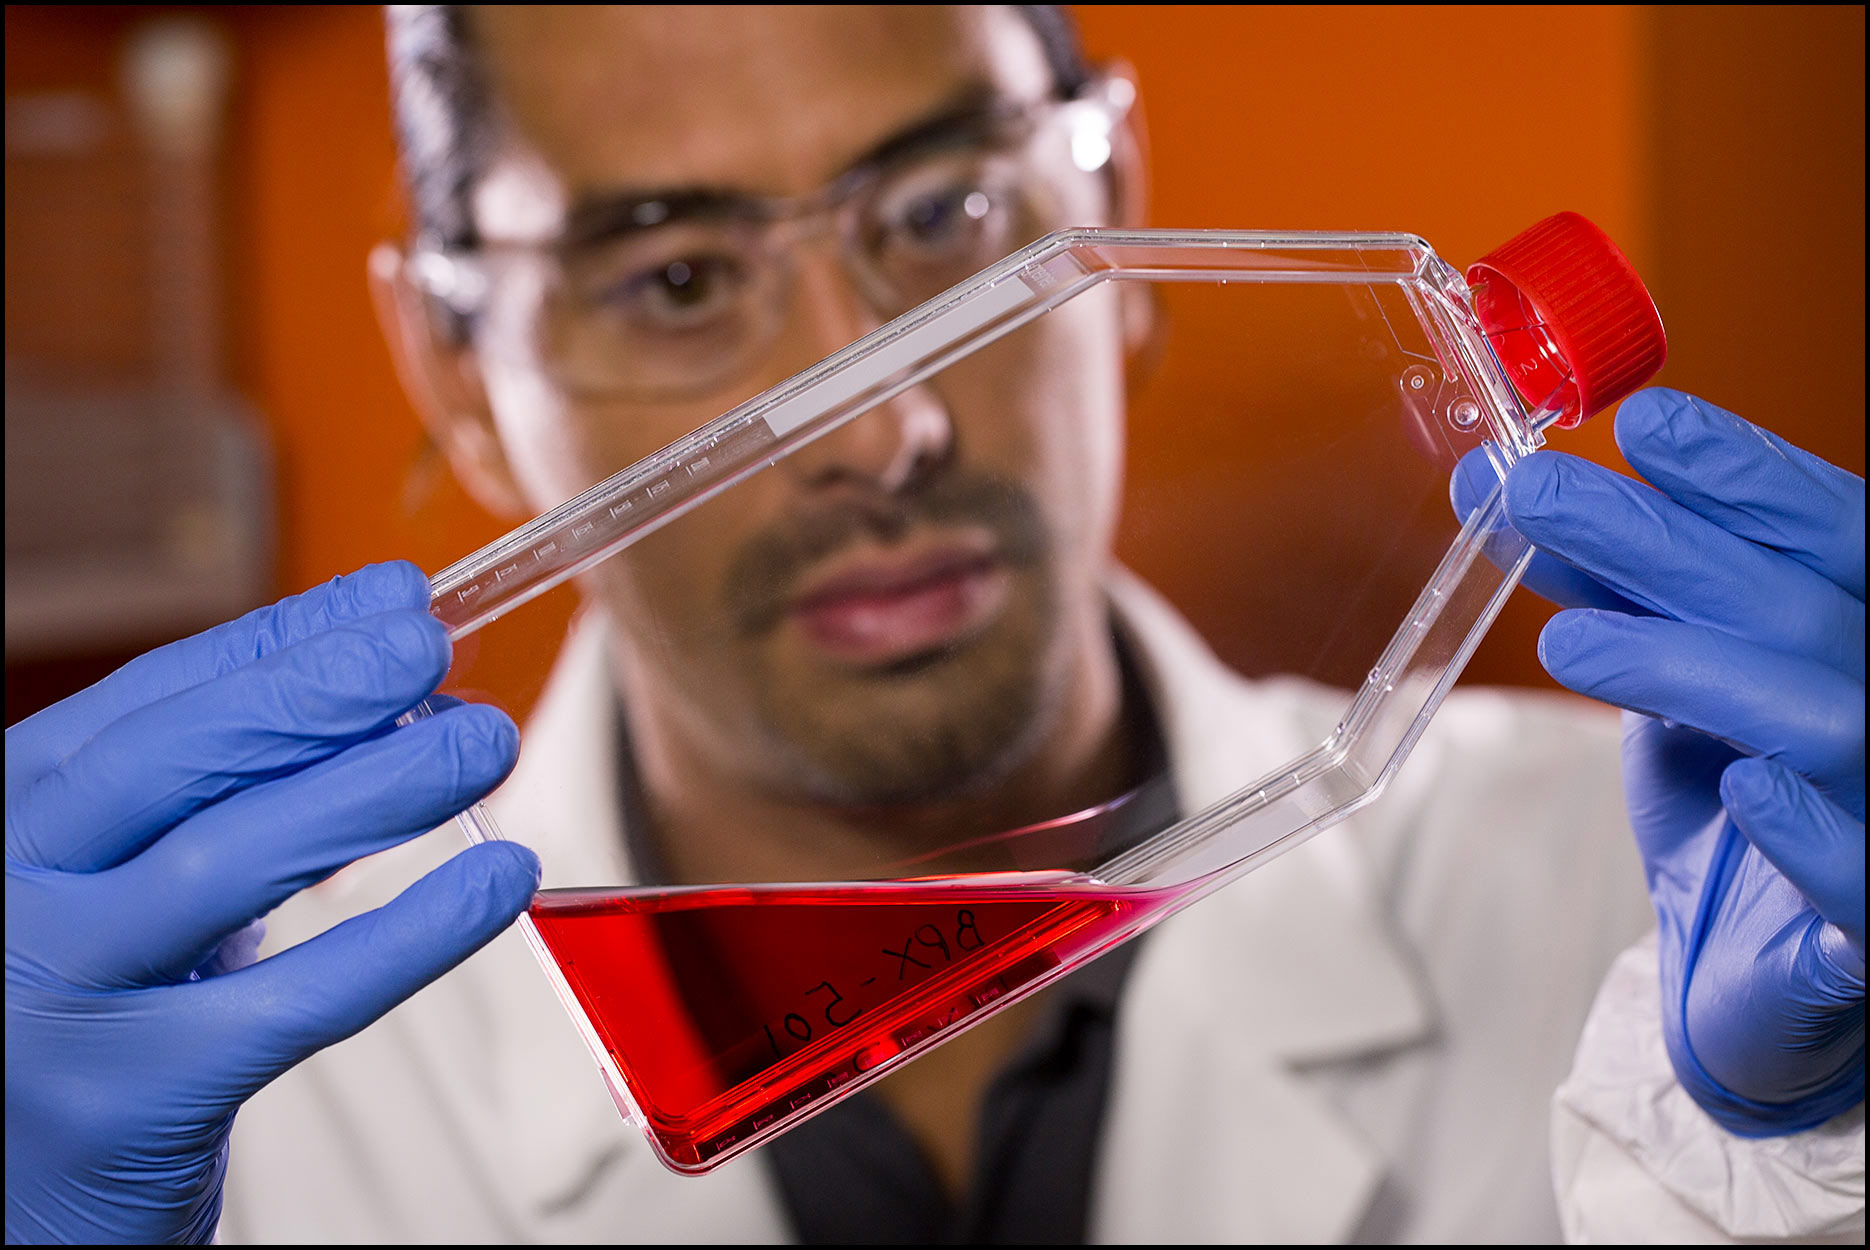 Detail of a lab technician in safety gear holding and examining a red liquid sample inside a plastic flask.